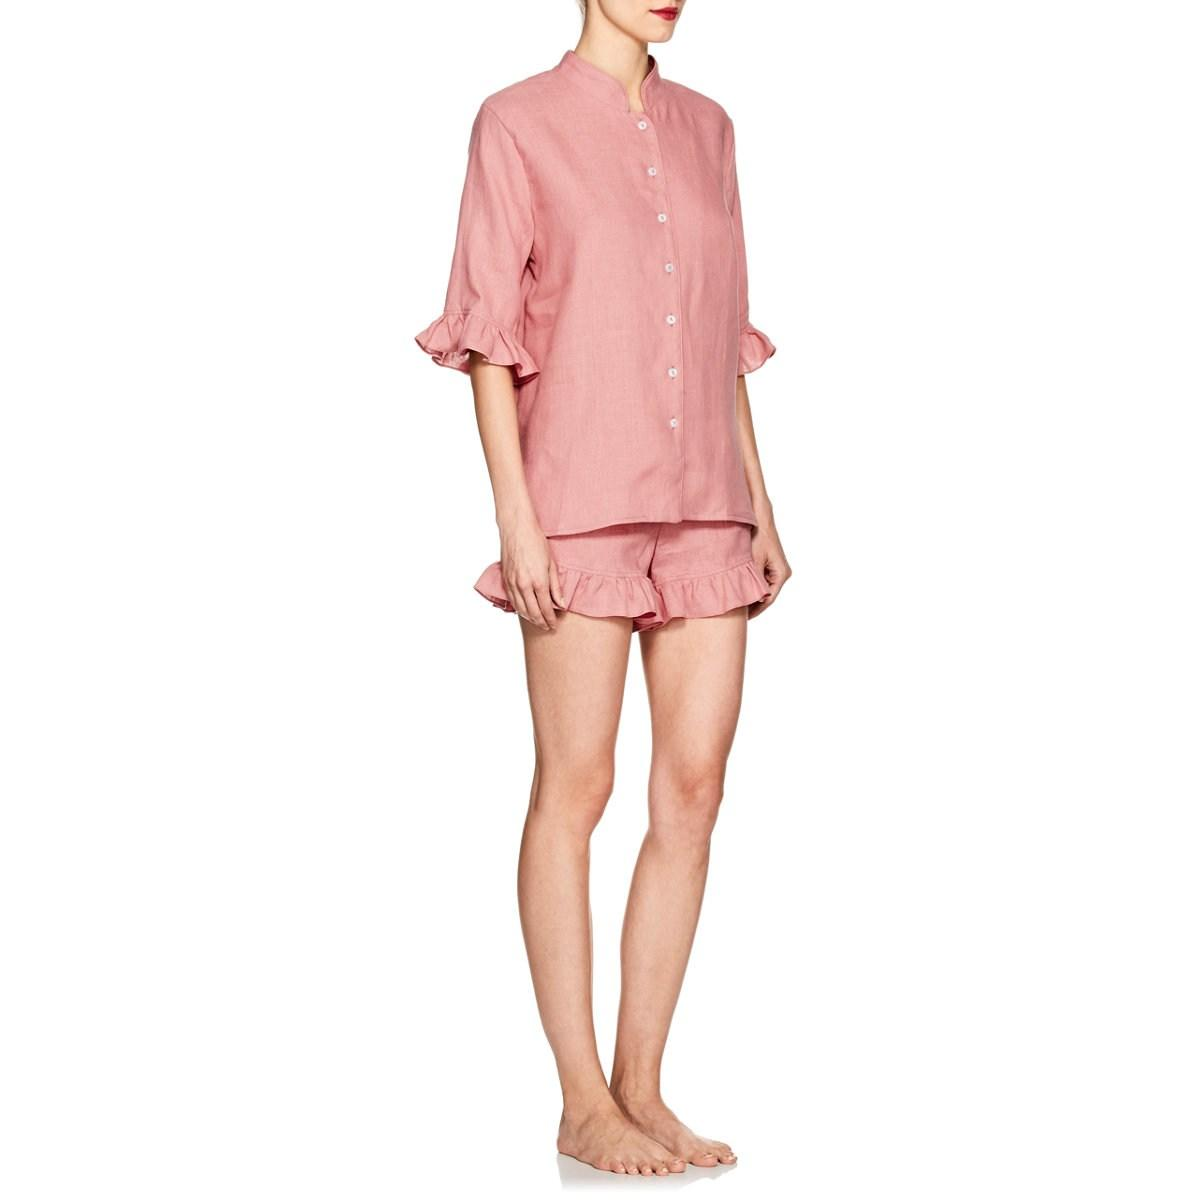 37f80637c Sleeper Ruffle Linen Pajama Set in Pink - Lyst